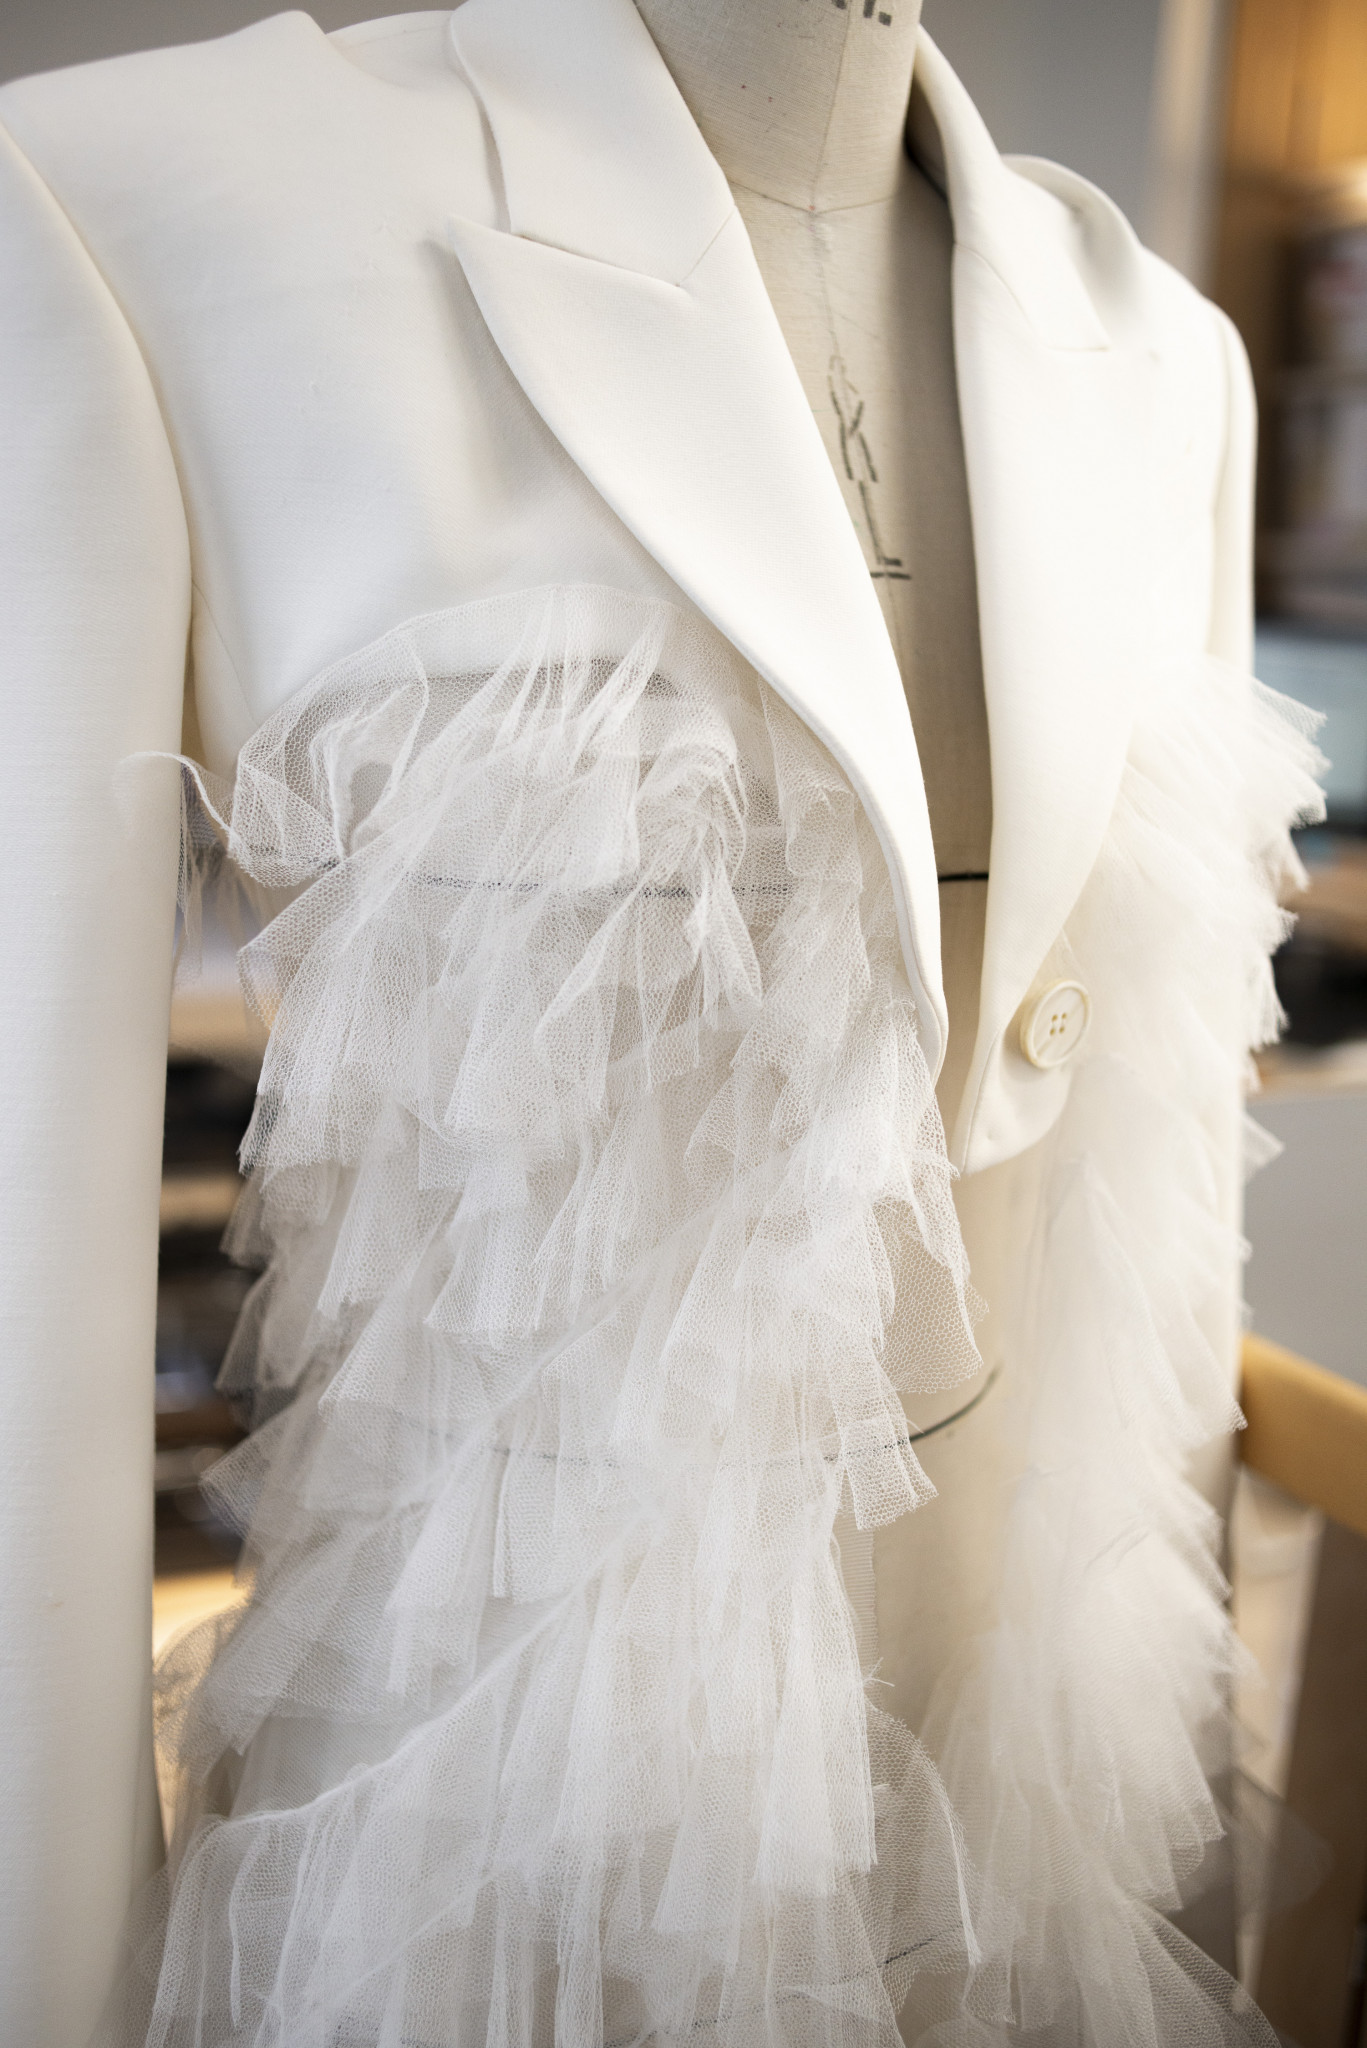 McQueen Upcycling SS21